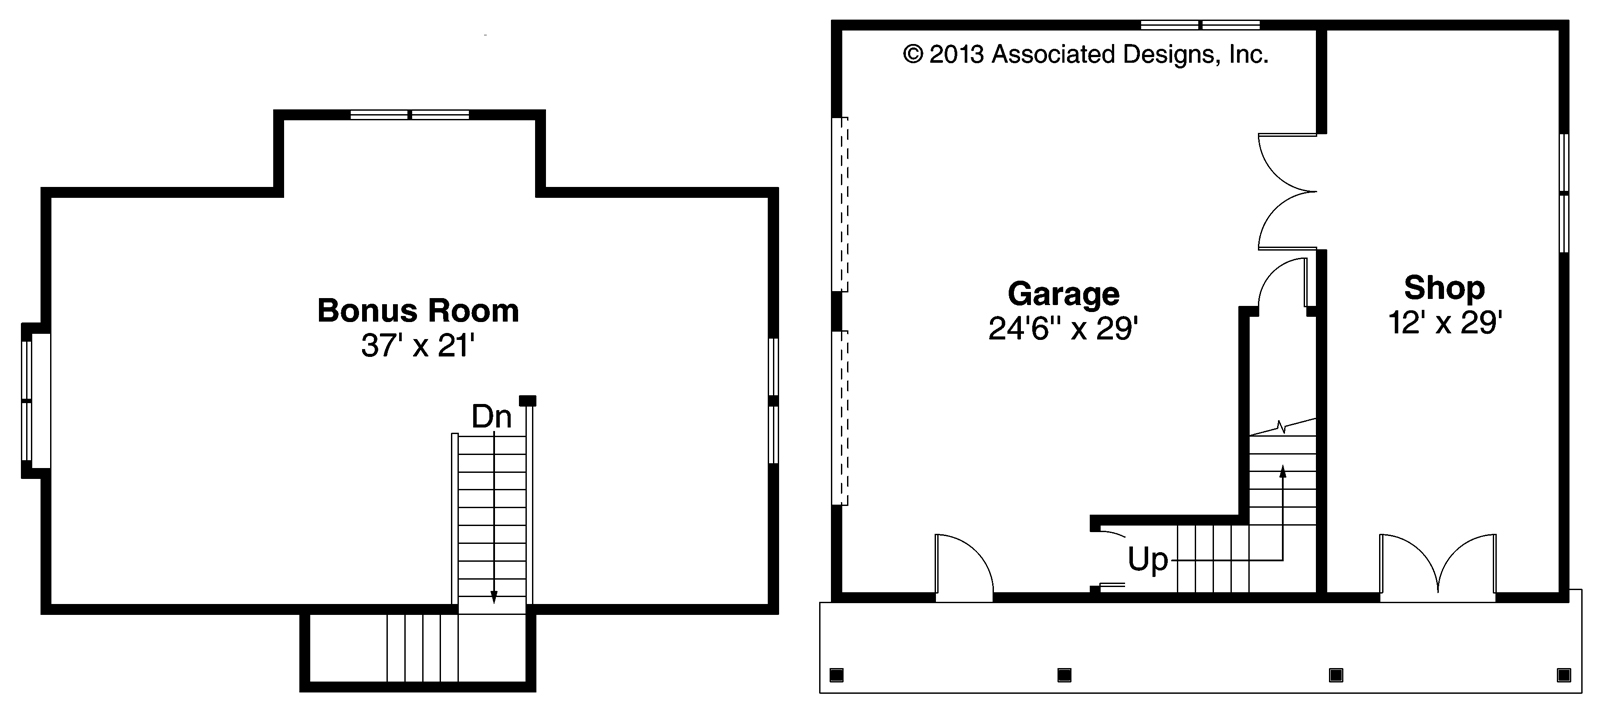 Garage plans with bonus room famin for How much to add a garage with bonus room